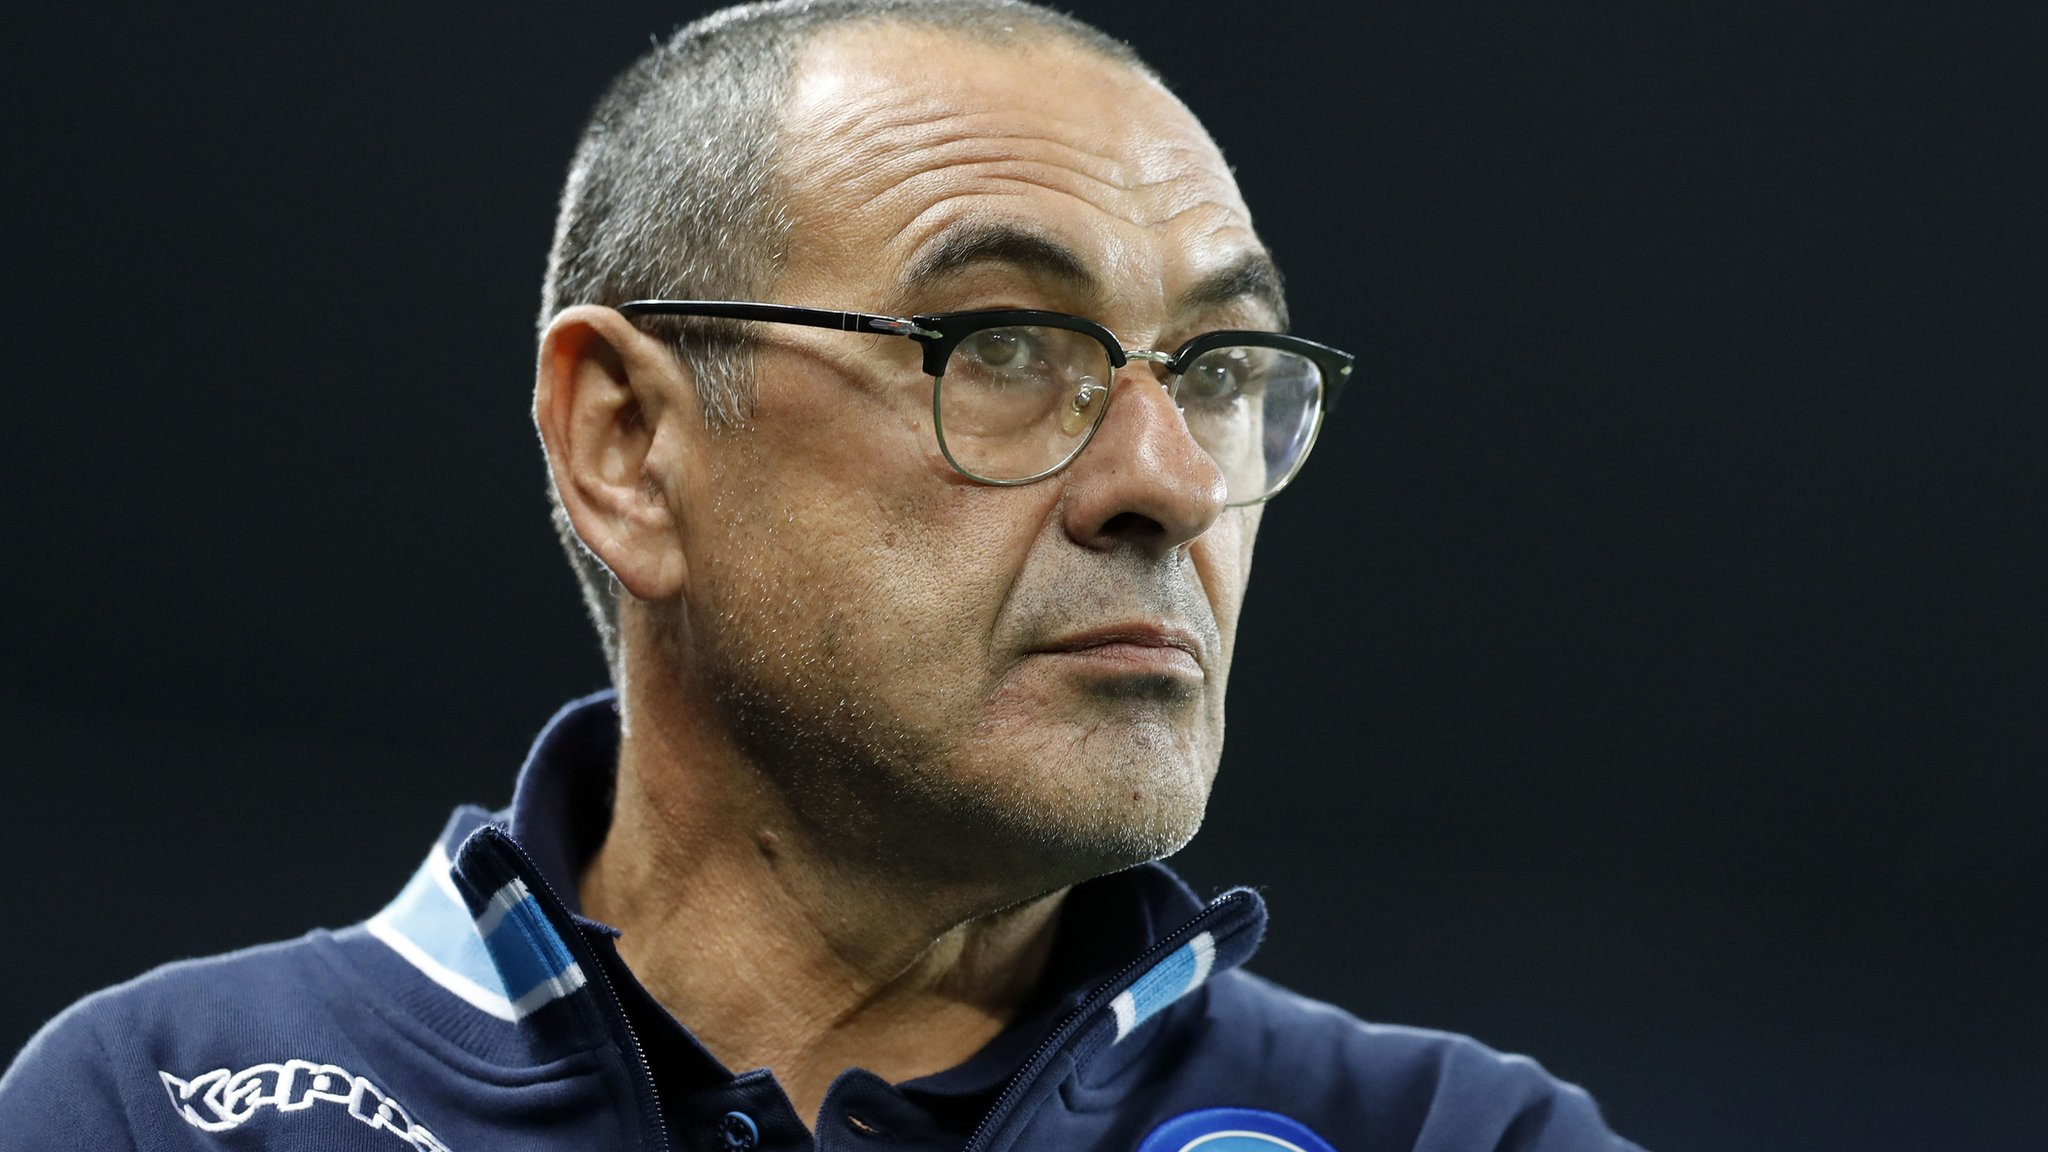 I'd give all my possessions for Chelsea glory - Sarri